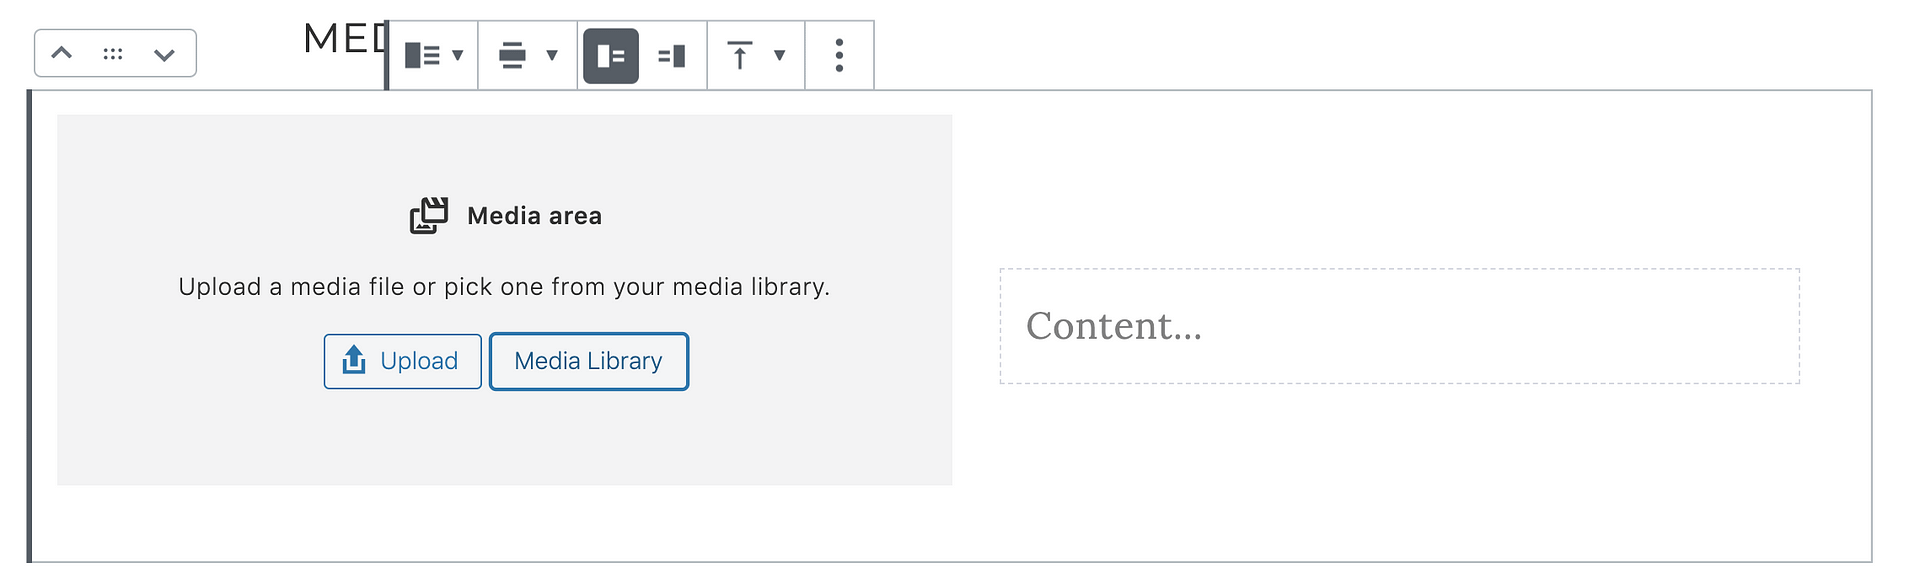 This is what the Media Text Block Looks like before you add the content.